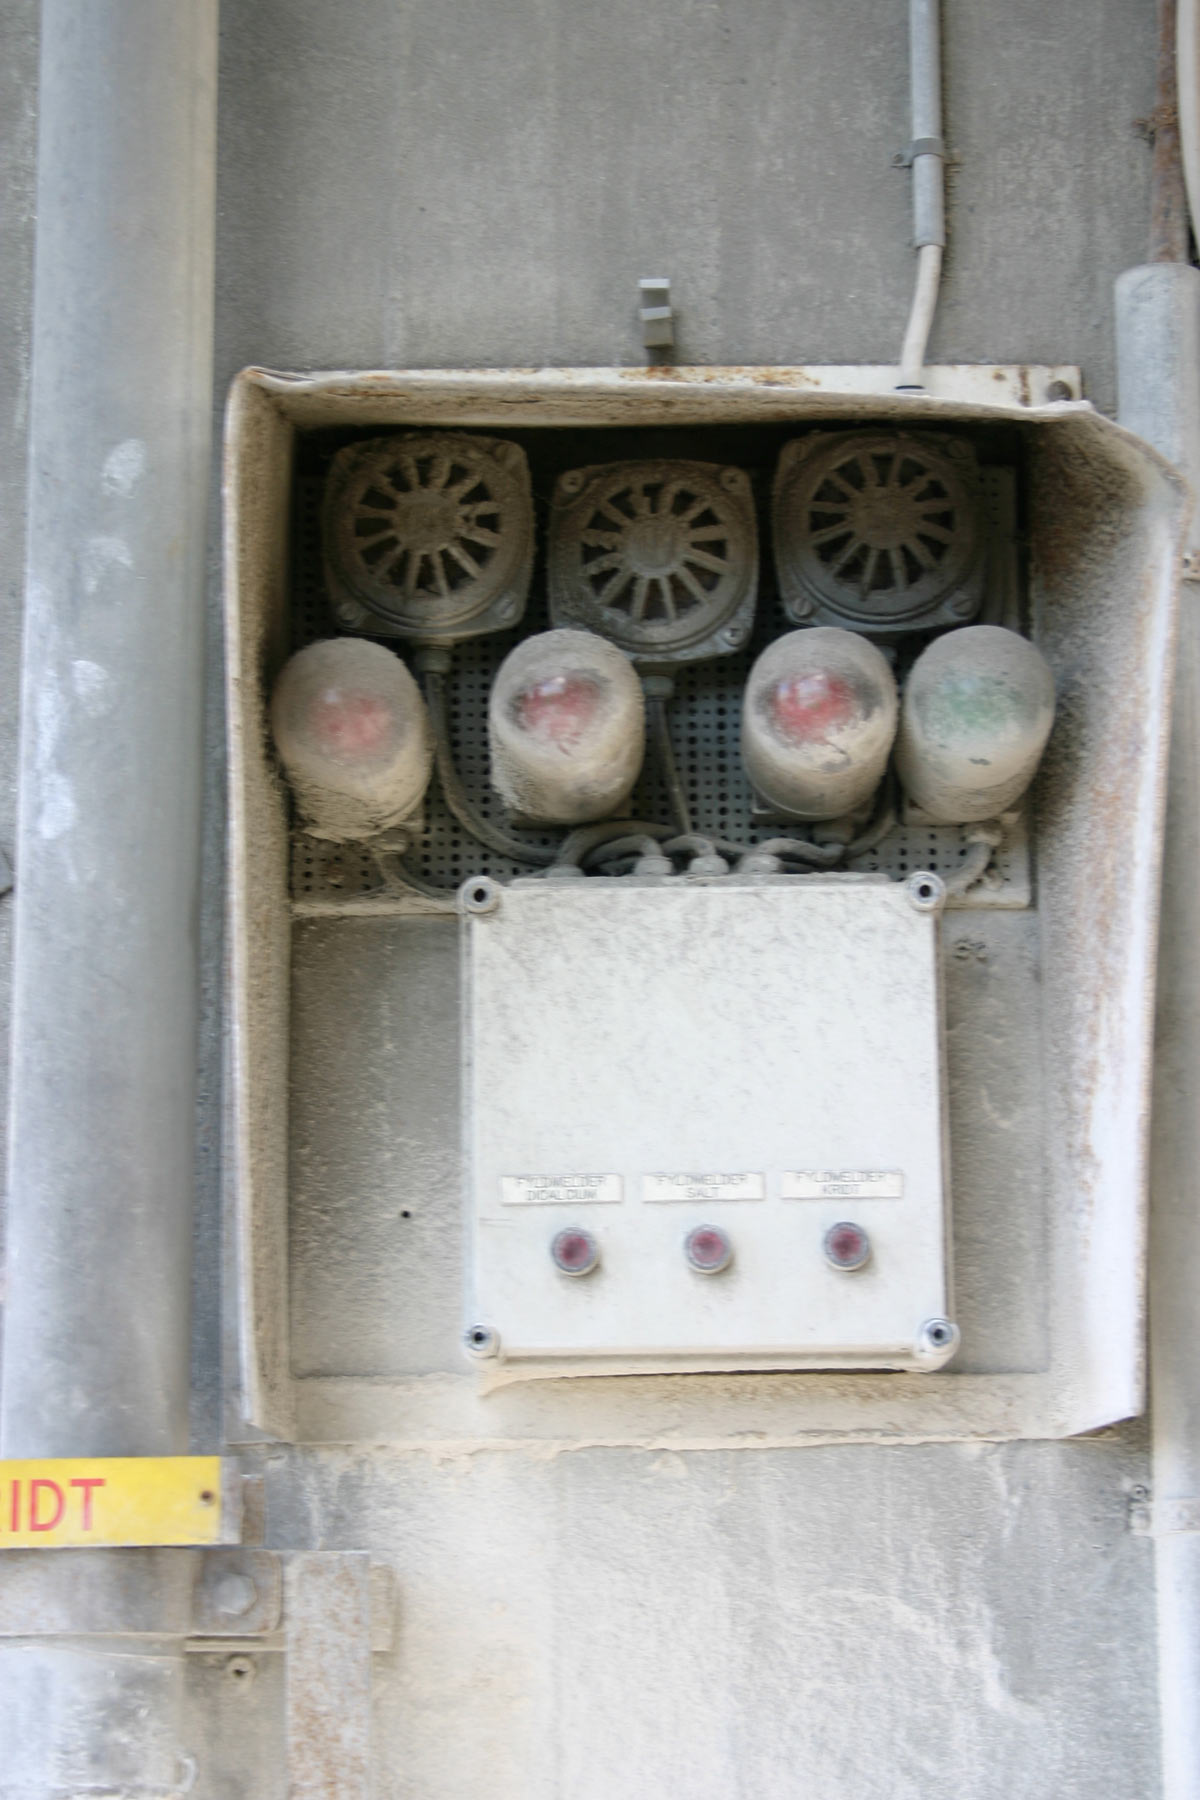 hight resolution of fuse box power fuse box electricity hq photo